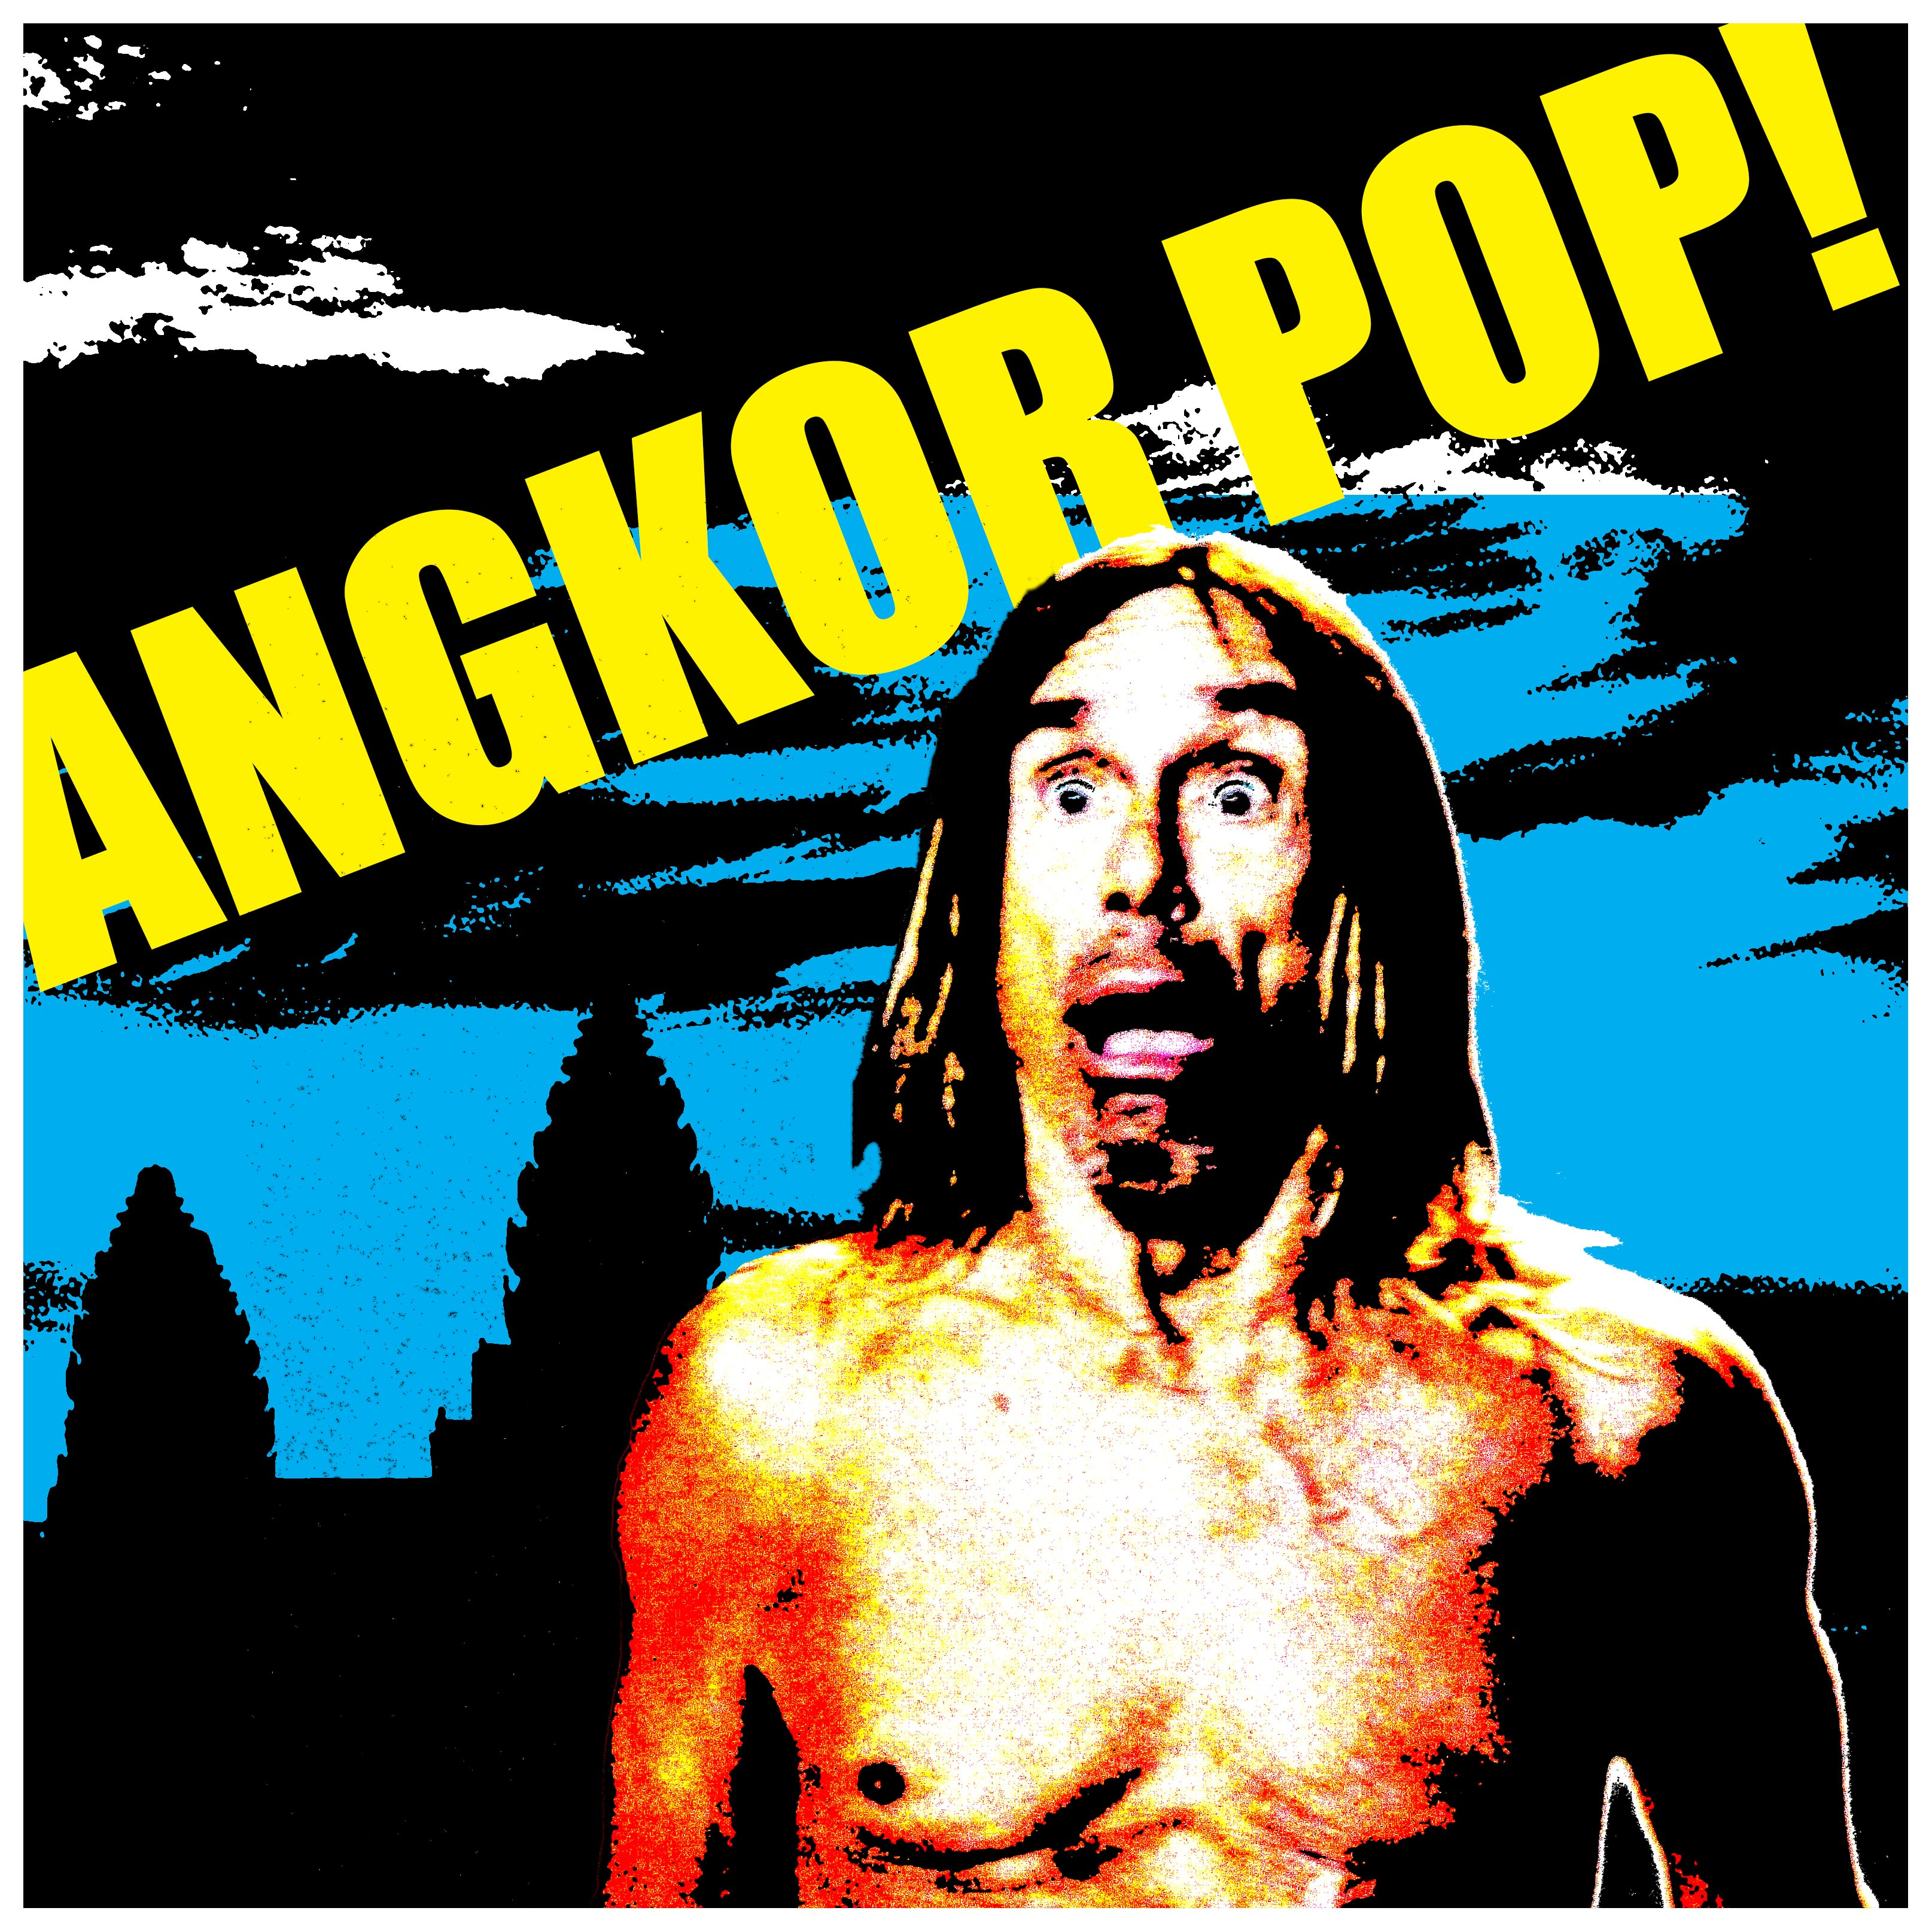 Iggy Pop Album Covers Top night of the iguana: a stolen homage to iggy pop - cambodian space